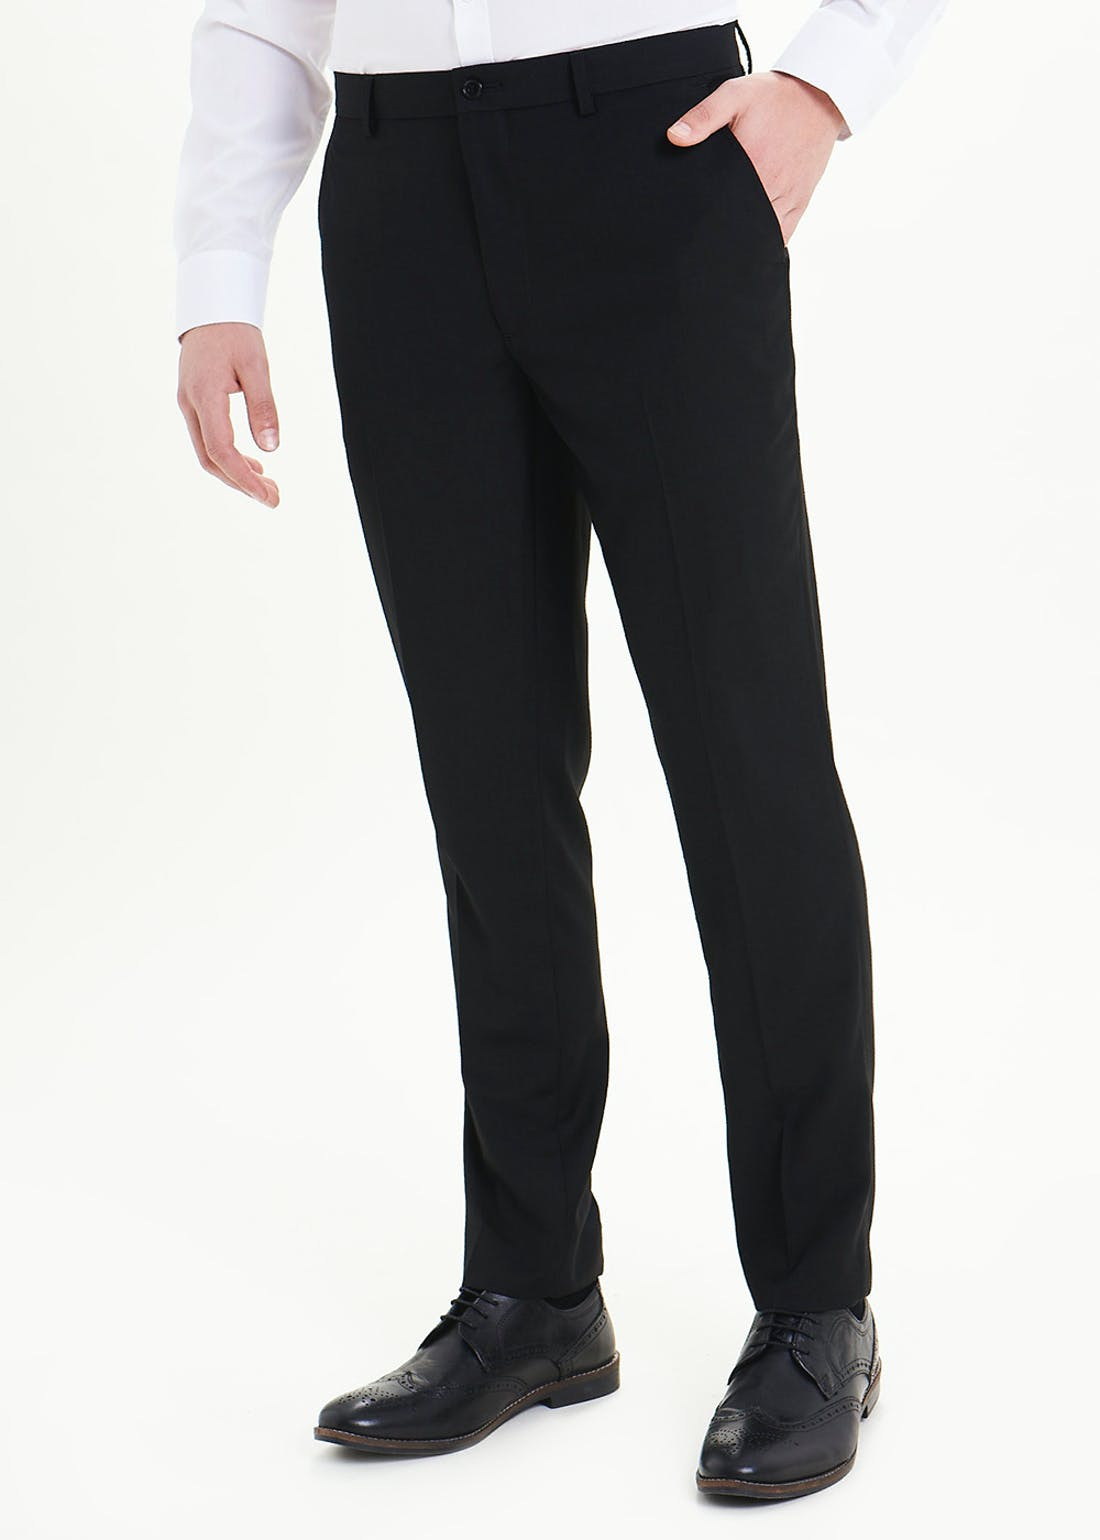 Taylor & Wright Firth Slim Fit Tuxedo Trousers